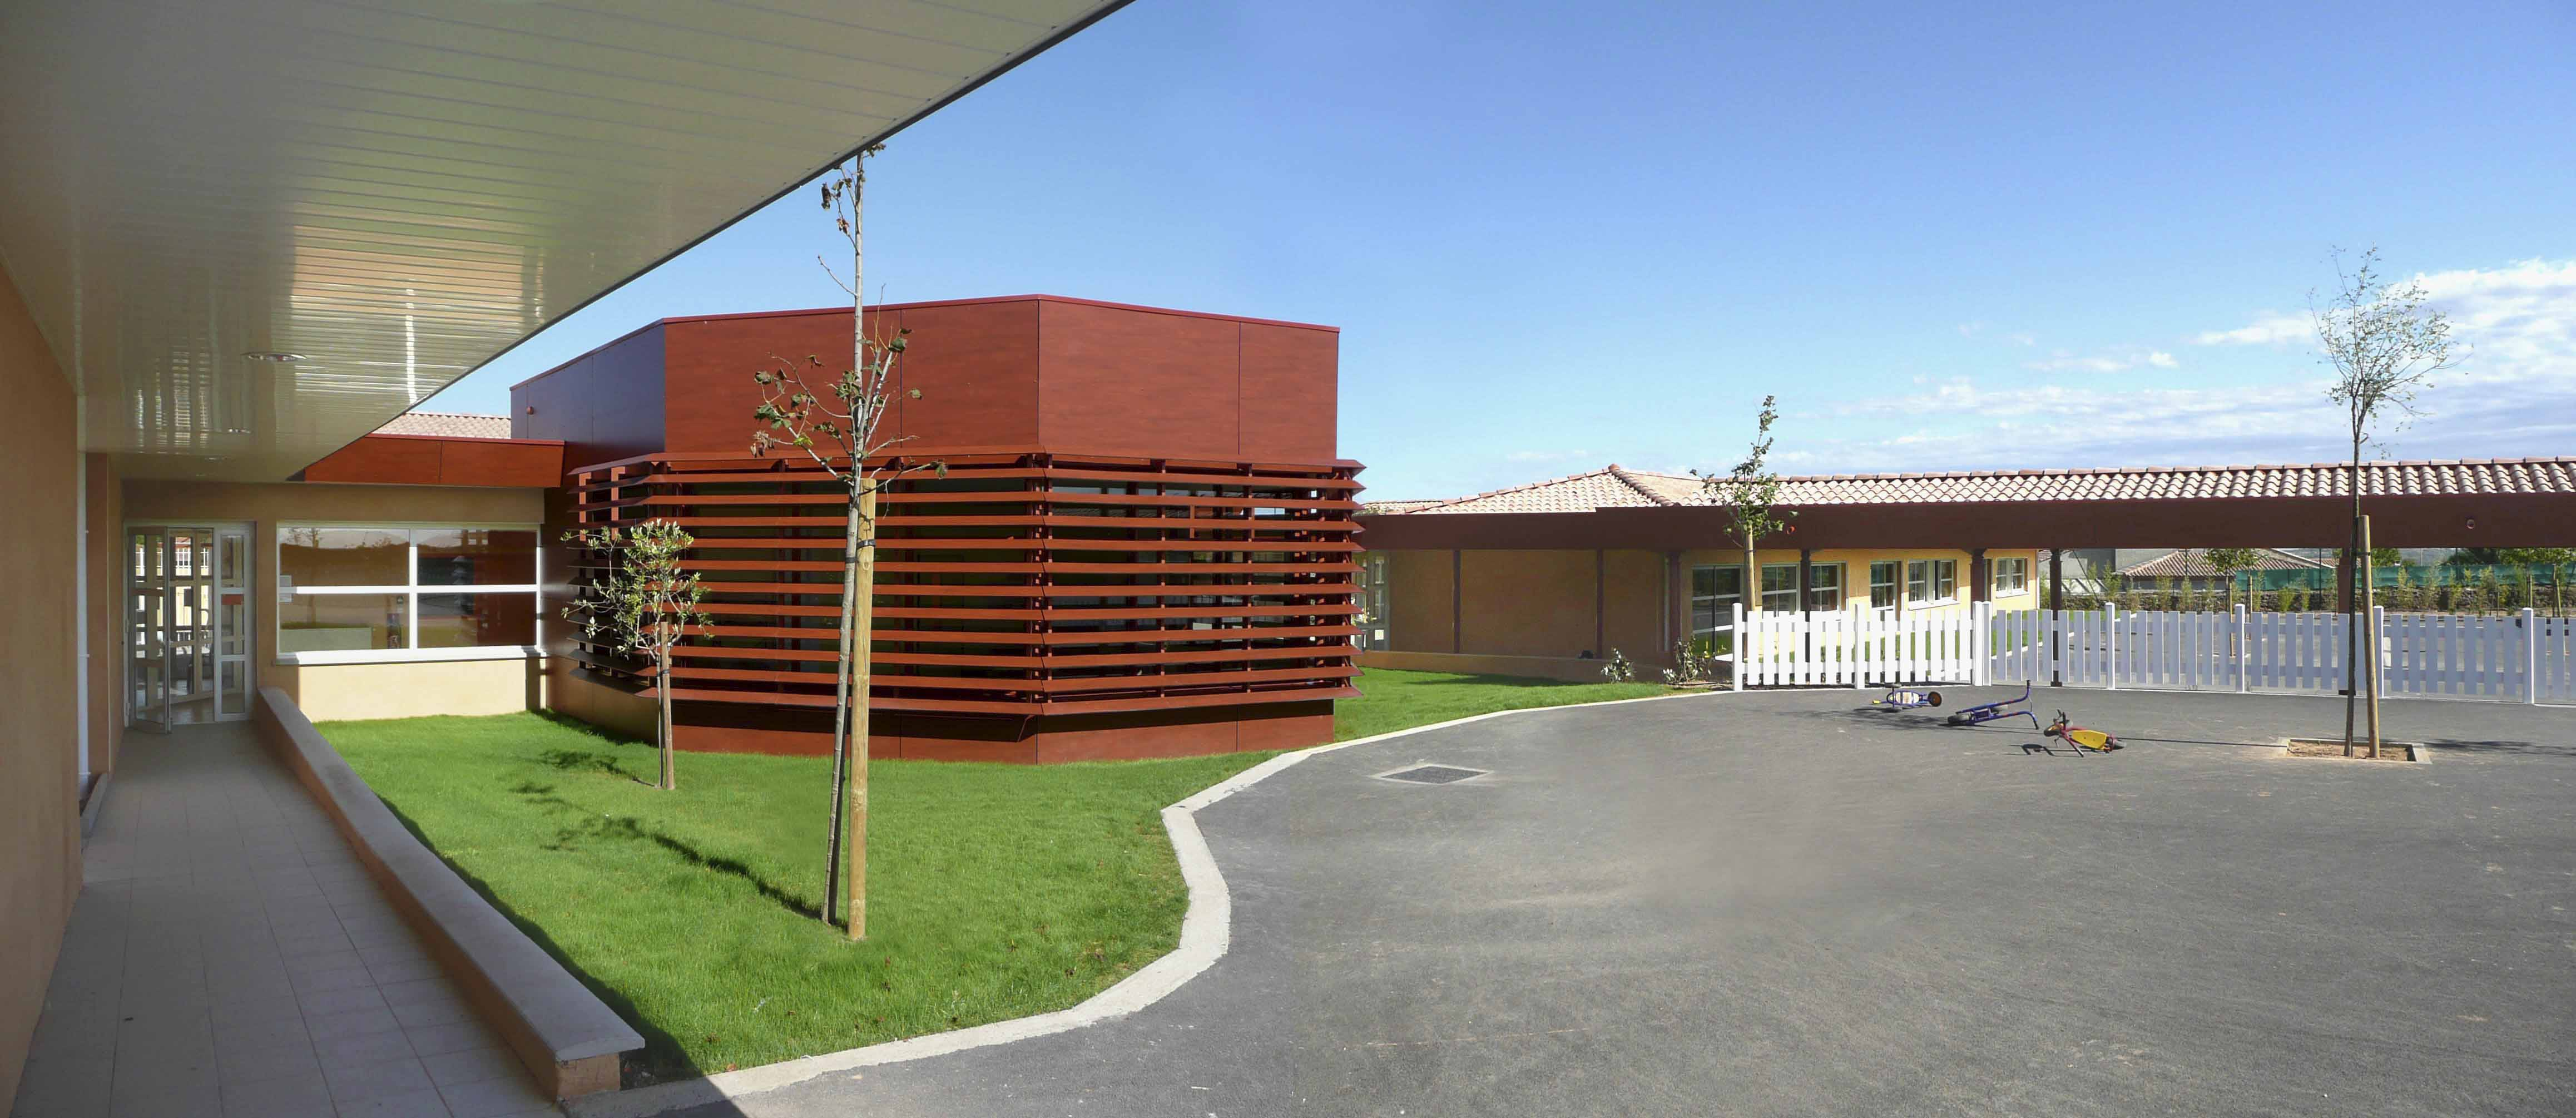 Groupe scolaire Hérault BF Architecture 1